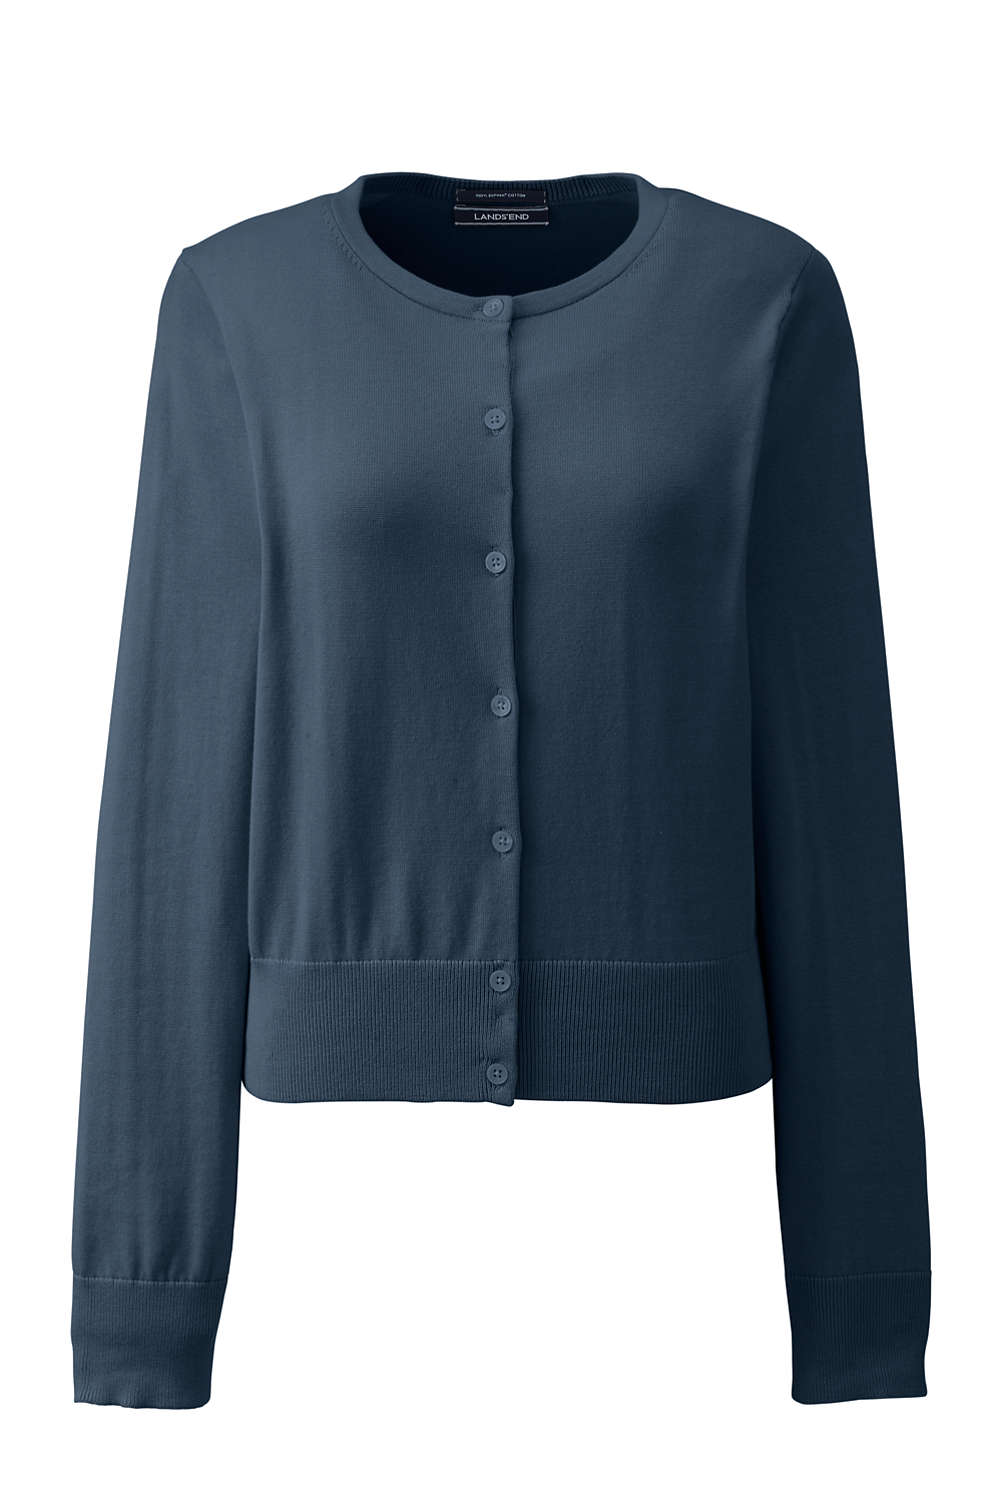 8d1b4ee73c Women s Supima Cotton Short Cardigan Sweater from Lands  End